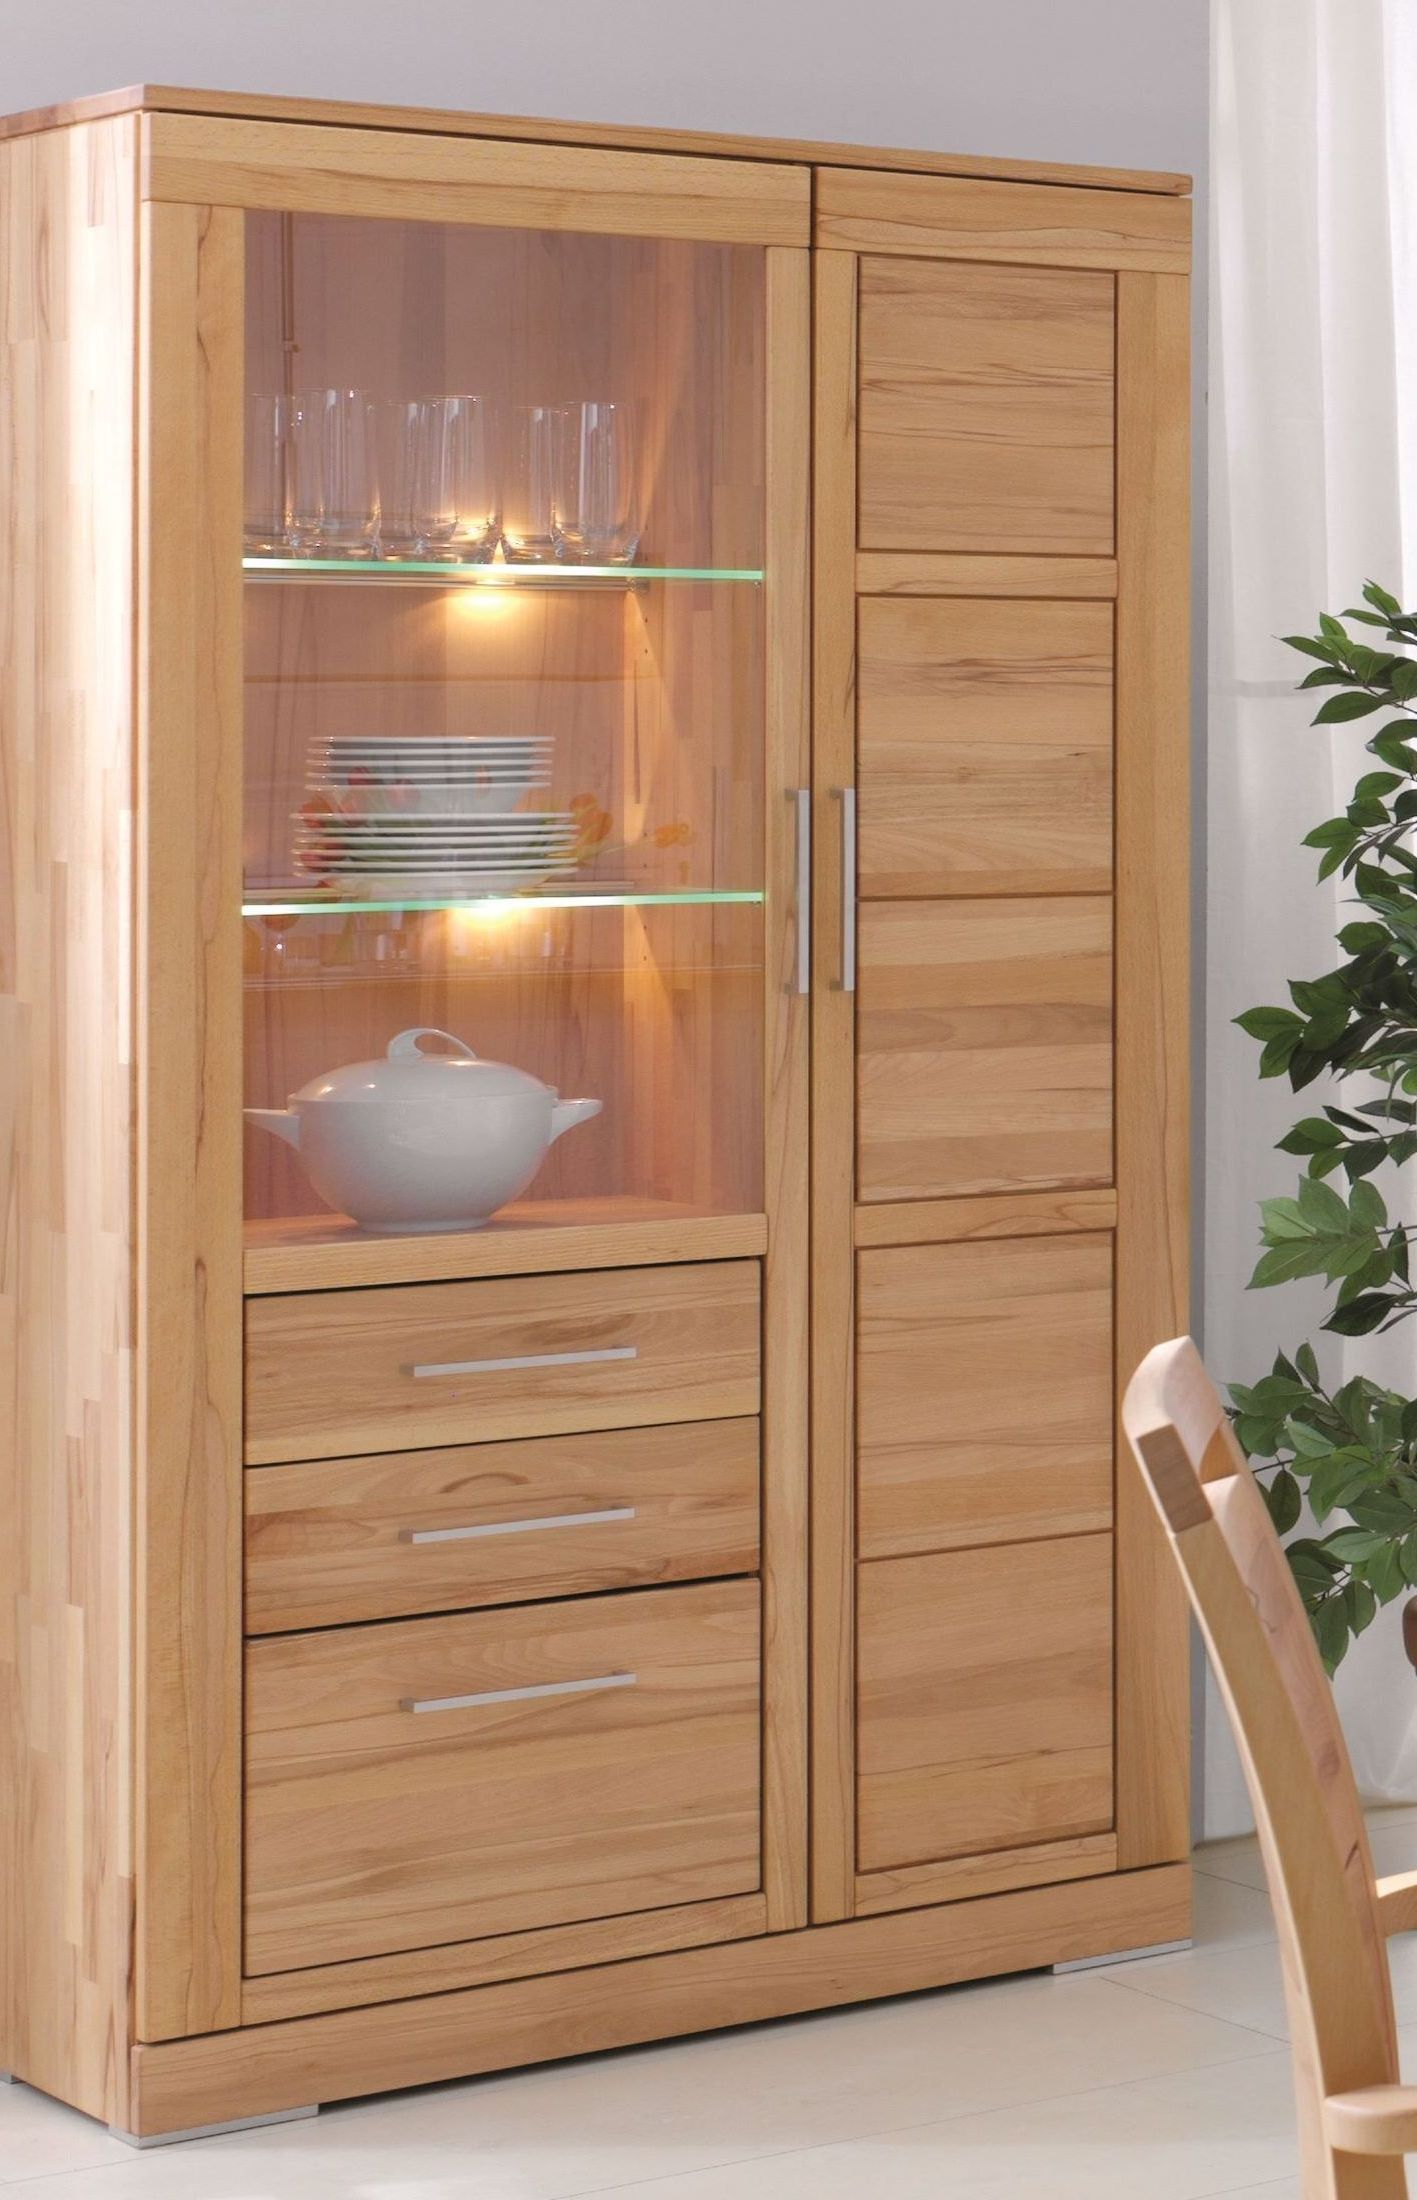 wohnzimmerschrank vitrine holz rotkernbuche massiv natur ge lt casera. Black Bedroom Furniture Sets. Home Design Ideas